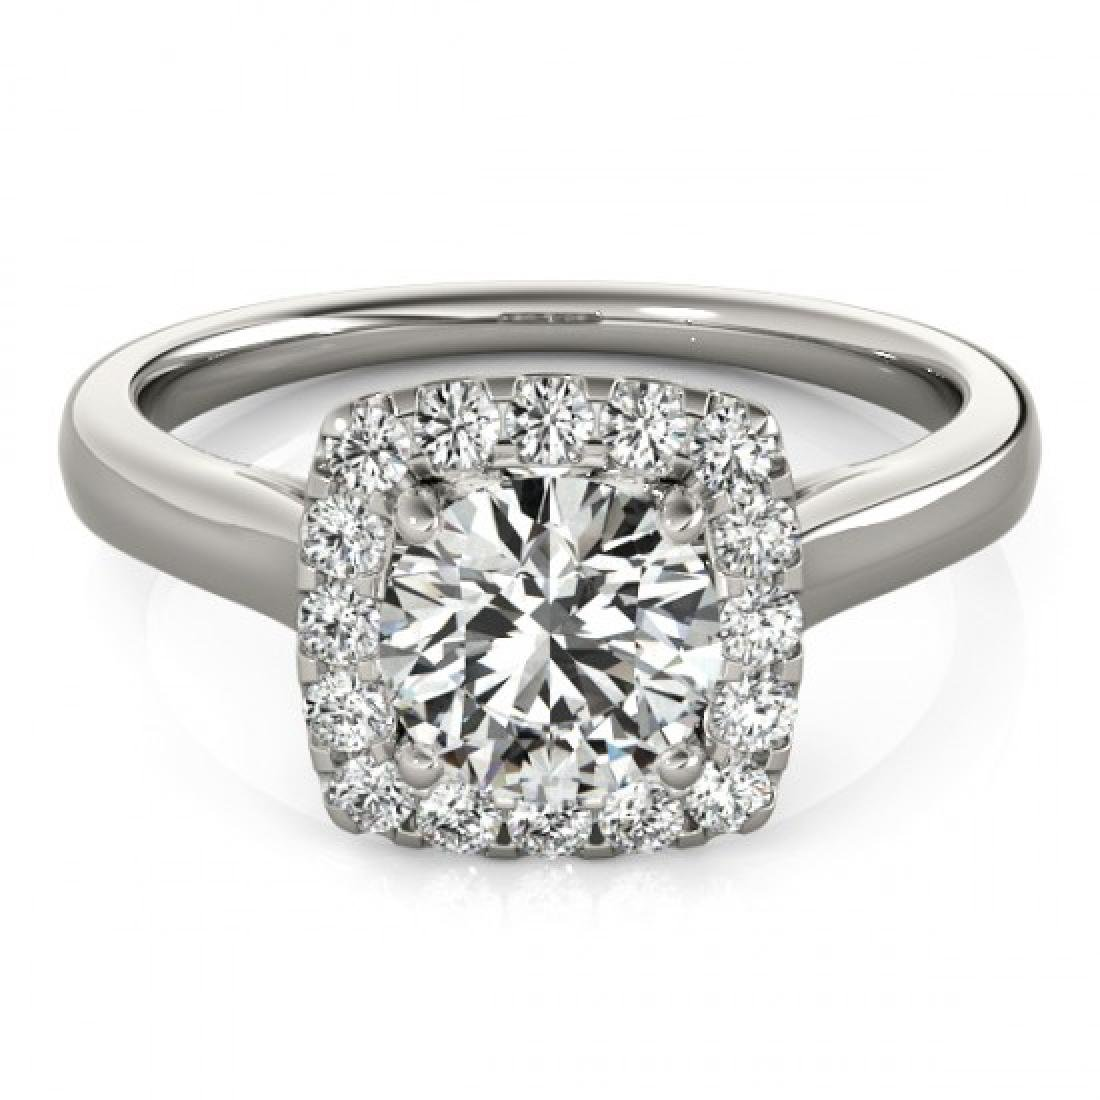 1.37 CTW Certified VS/SI Diamond Solitaire Halo Ring